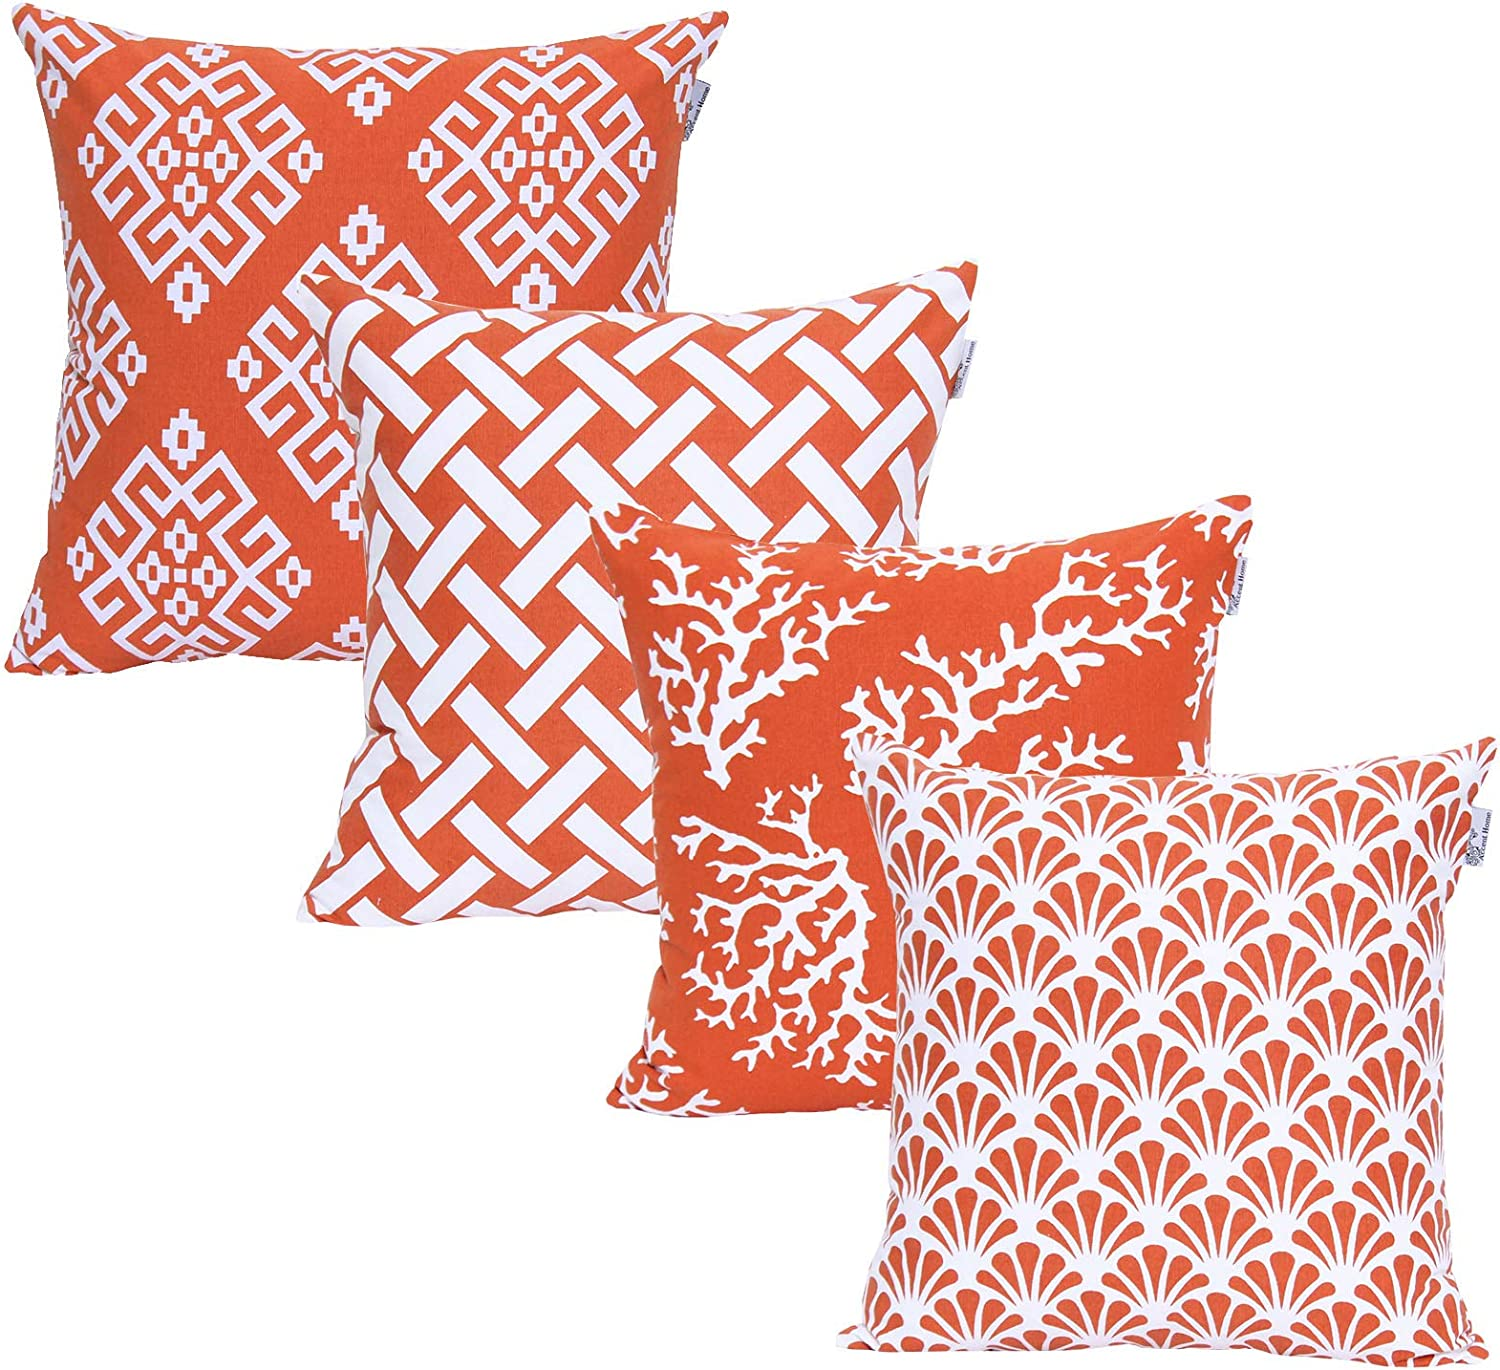 ACCENTHOME Square Printed Cotton Cushion Cover,Throw Pillow Case, Slipover Pillowslip for Home Sofa Couch Chair Back Seat,4pc Pack 18x18 in Rust Color